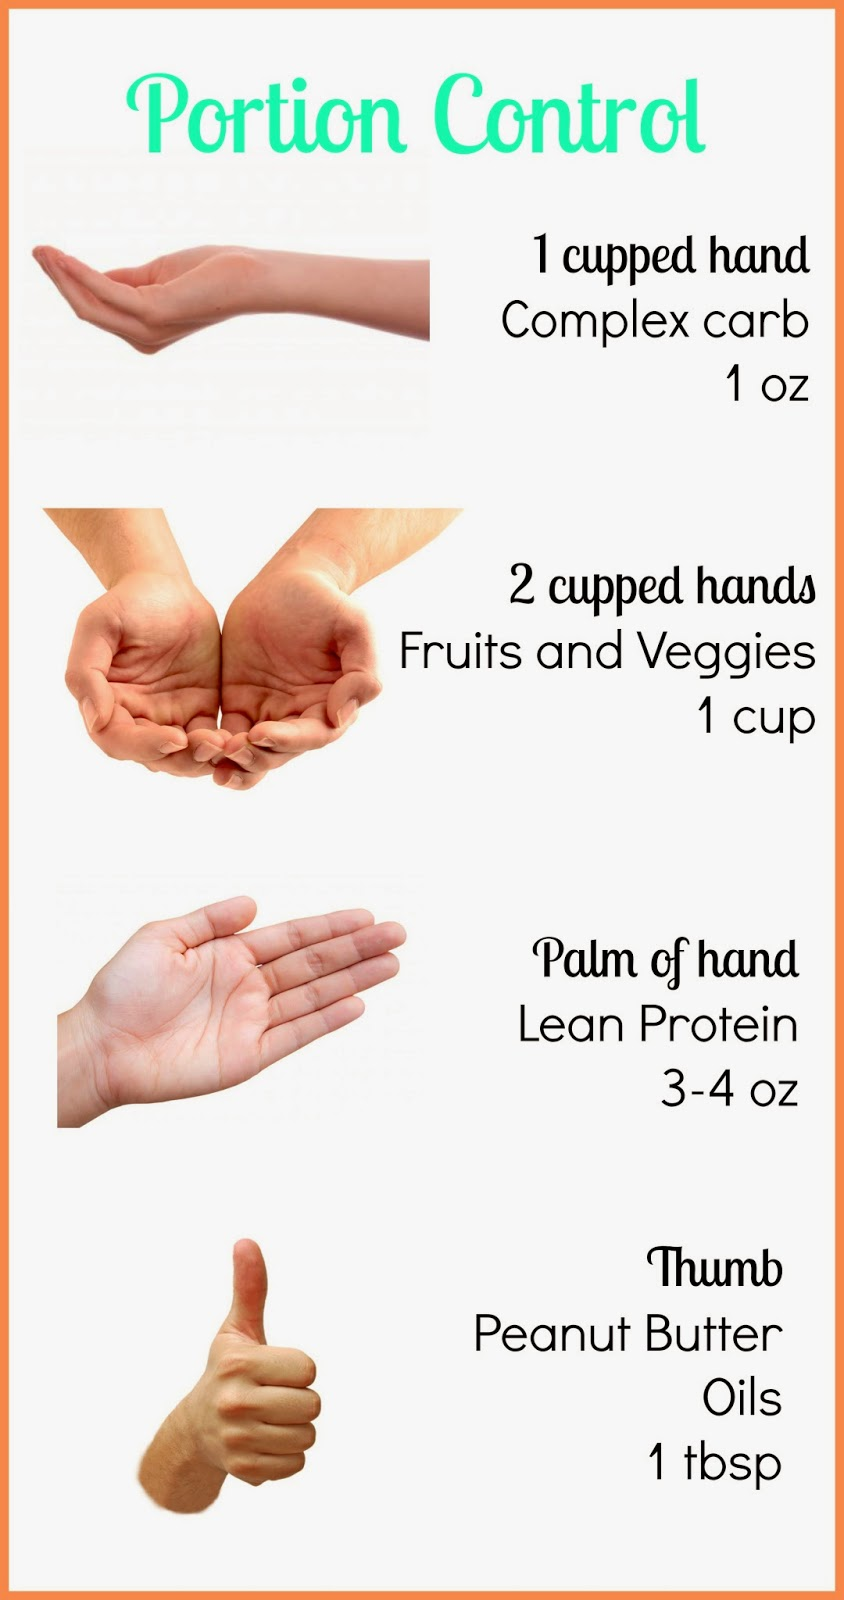 clean eating, portion control